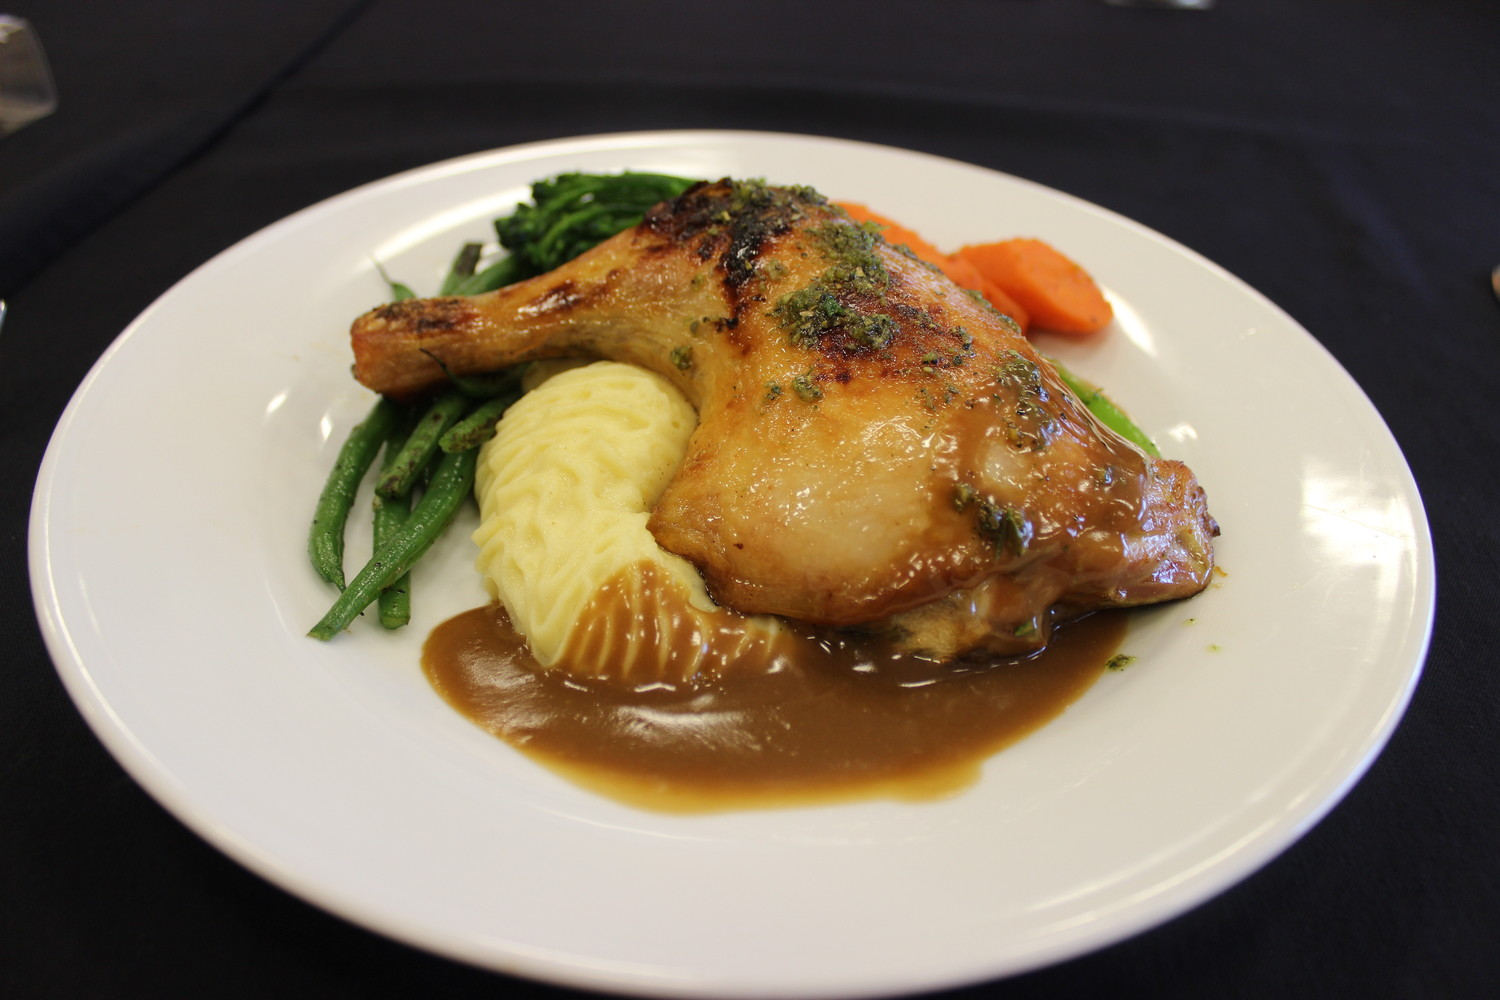 Roasted herb chicken with butter-whipped potatoes and sautéed root vegetables in a veal Brandywine demi glaze, which is an example of the cuisine Sawgrass Events can provide its customers.